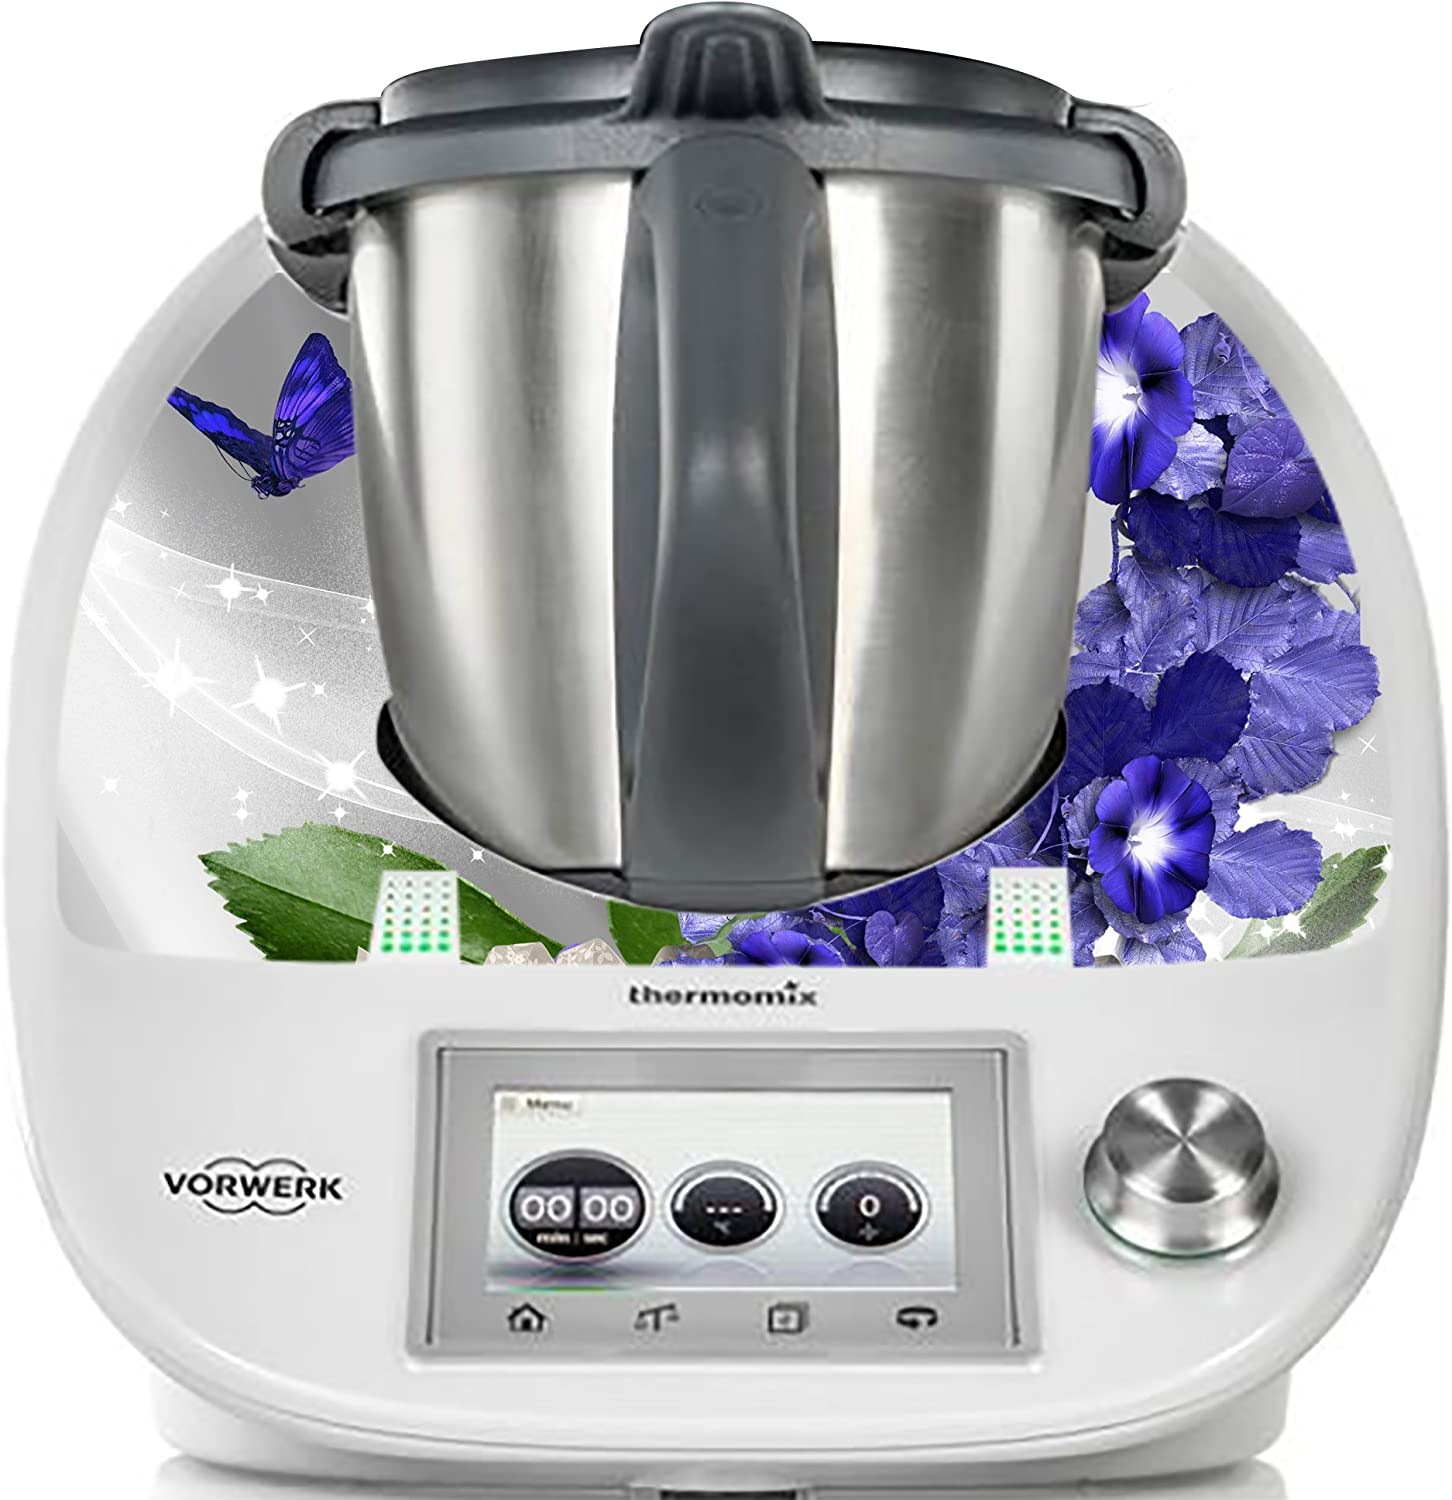 Thermodernizate- Vinilos Thermomix TM5 Y TM6 Mariposas y Violetas: Amazon.es